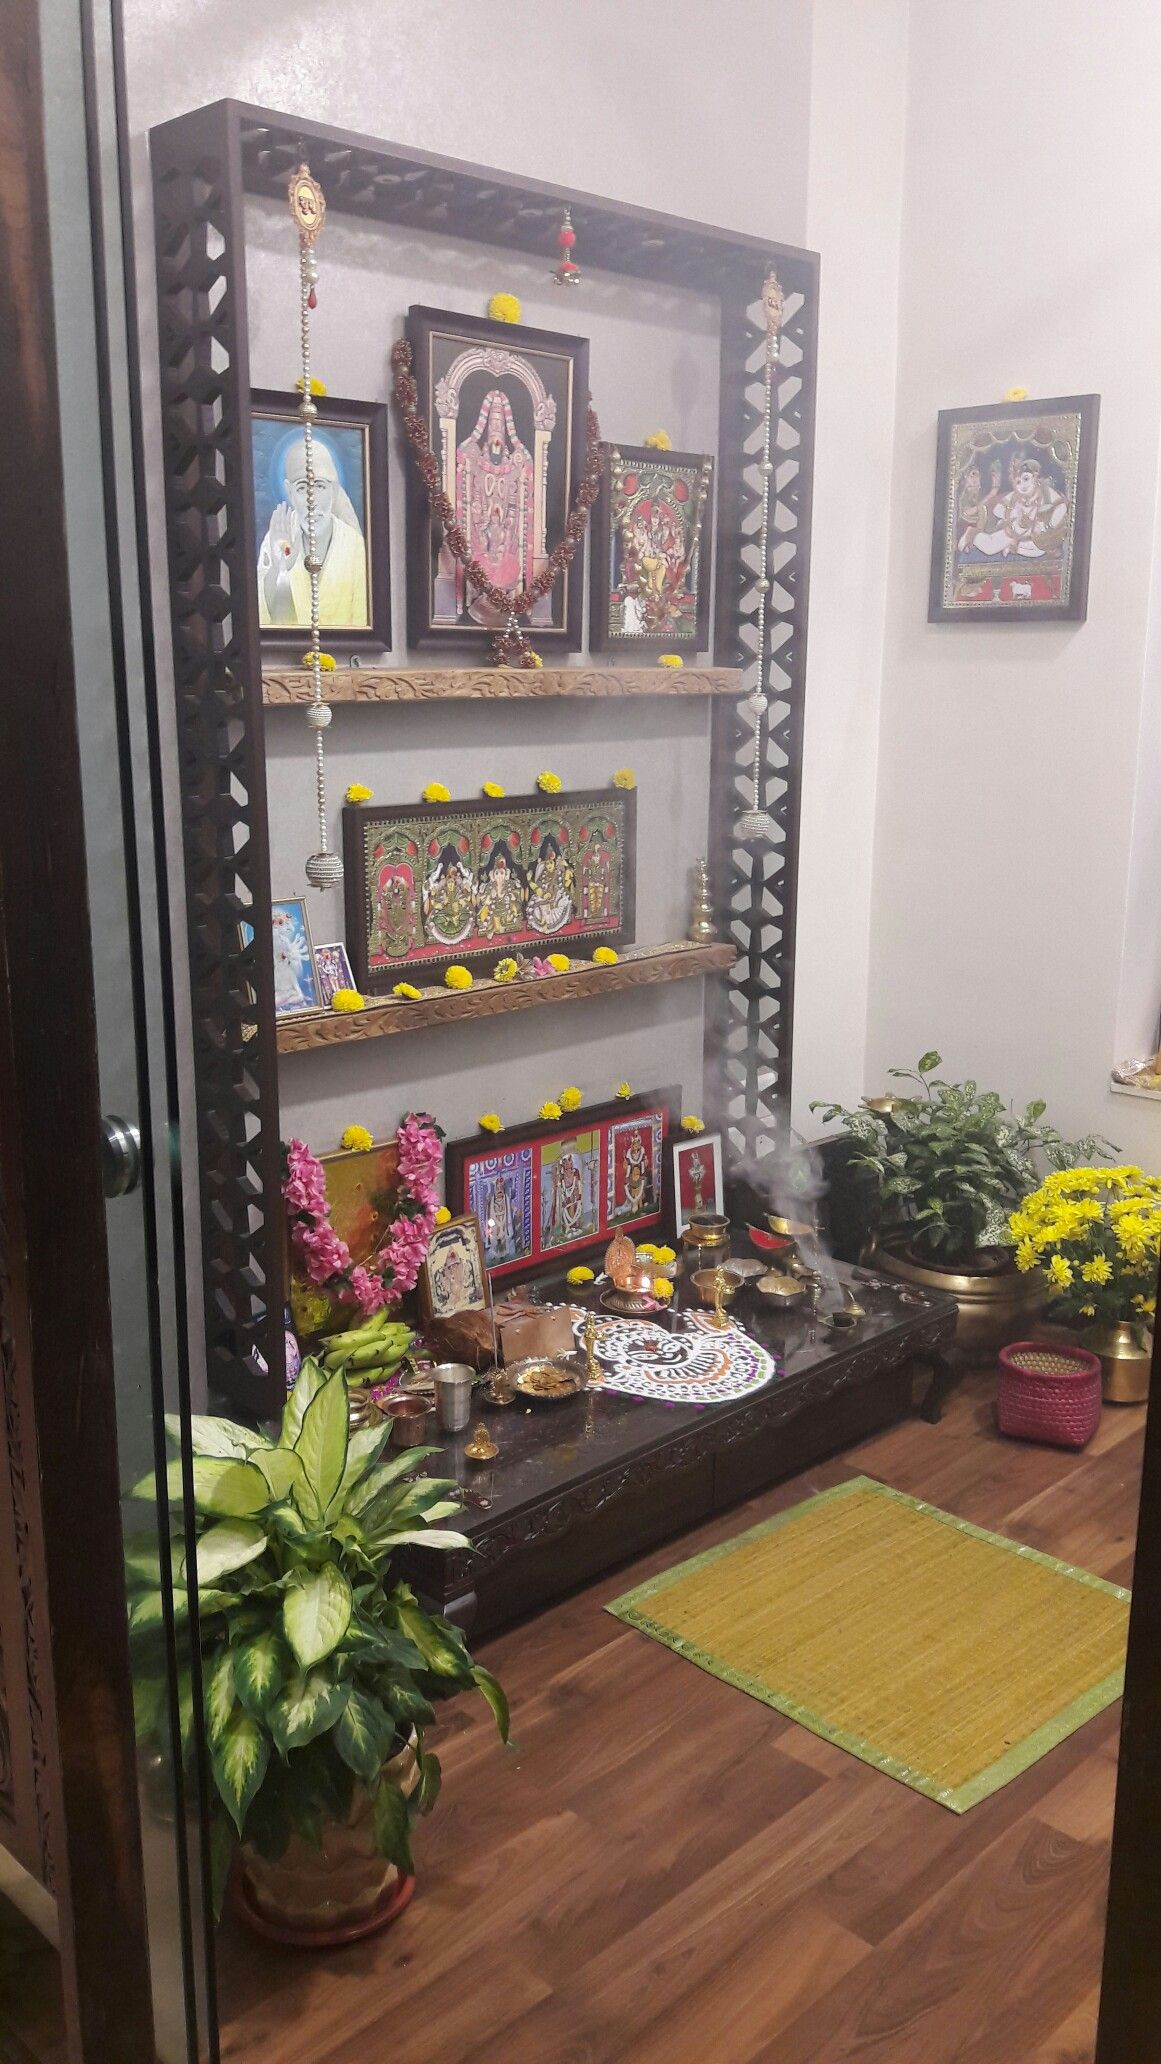 9 Traditional Pooja Room Door Designs In 2020: Pin By Kavitha Nadar On Kavinadar Indian Home Decor